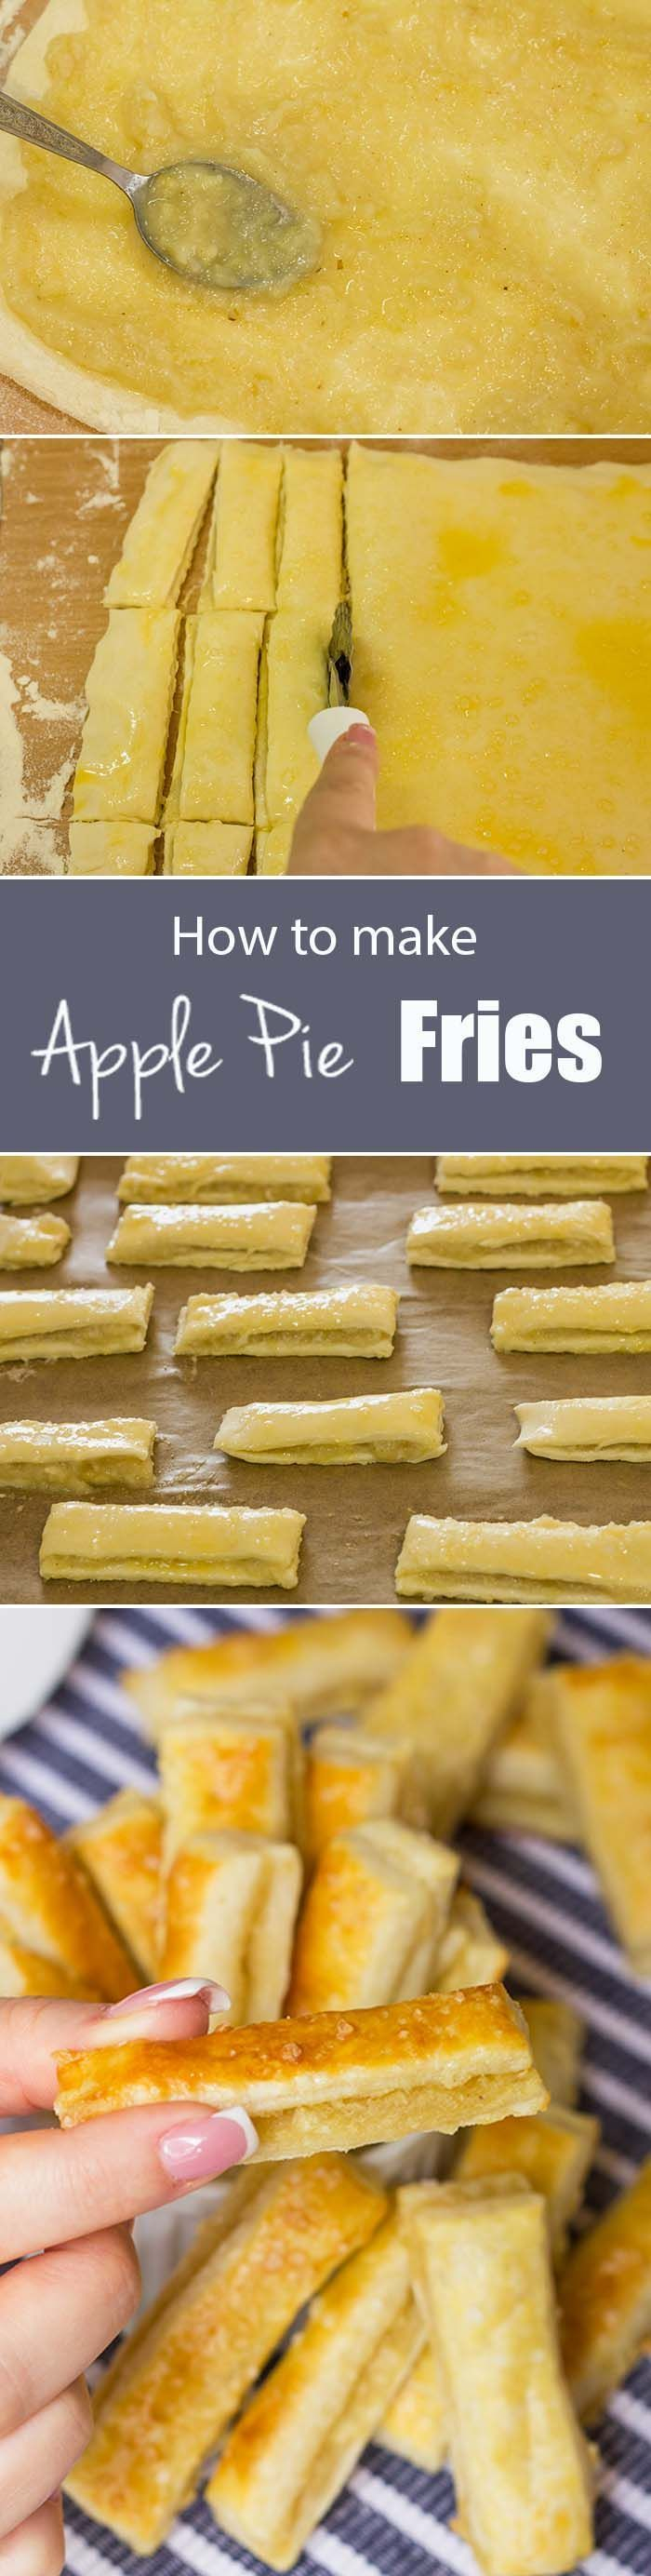 Apple Pie Fries Recipe ~ For those super easy recipes made of only five basic ingredients these apple pie fries taste unbelievably great!